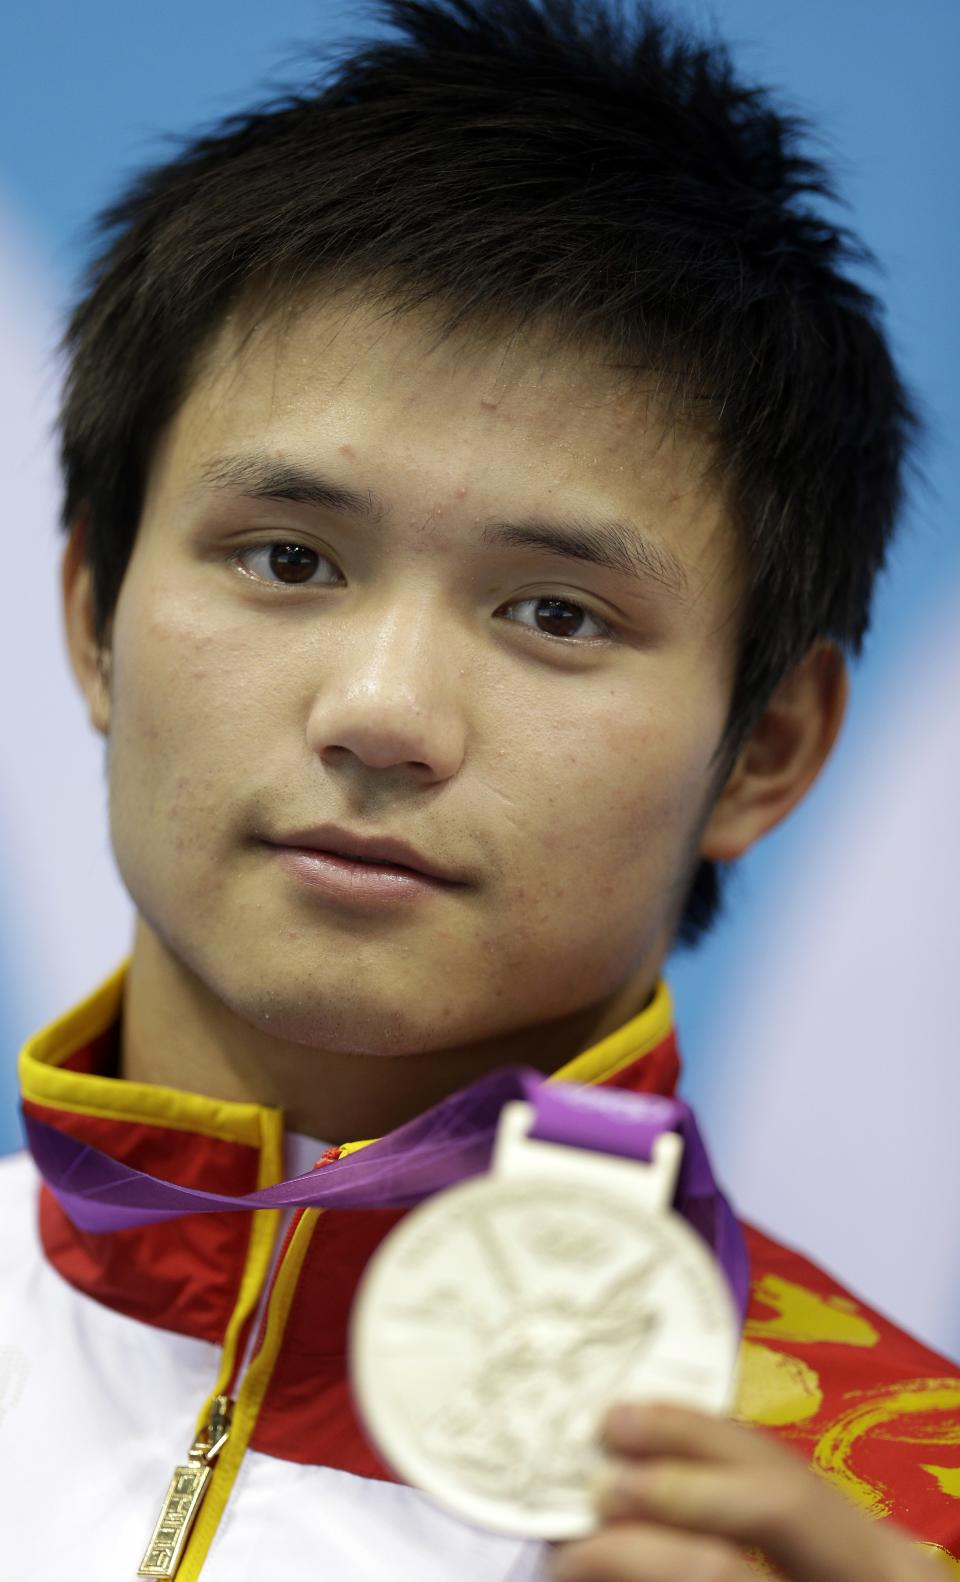 Silver medalist Qiu Bo from China poses during the medal ceremony for the men's 10-meter platform diving final at the Aquatics Centre in the Olympic Park during the 2012 Summer Olympics in London, Saturday, Aug. 11, 2012. (AP Photo/Michael Sohn)